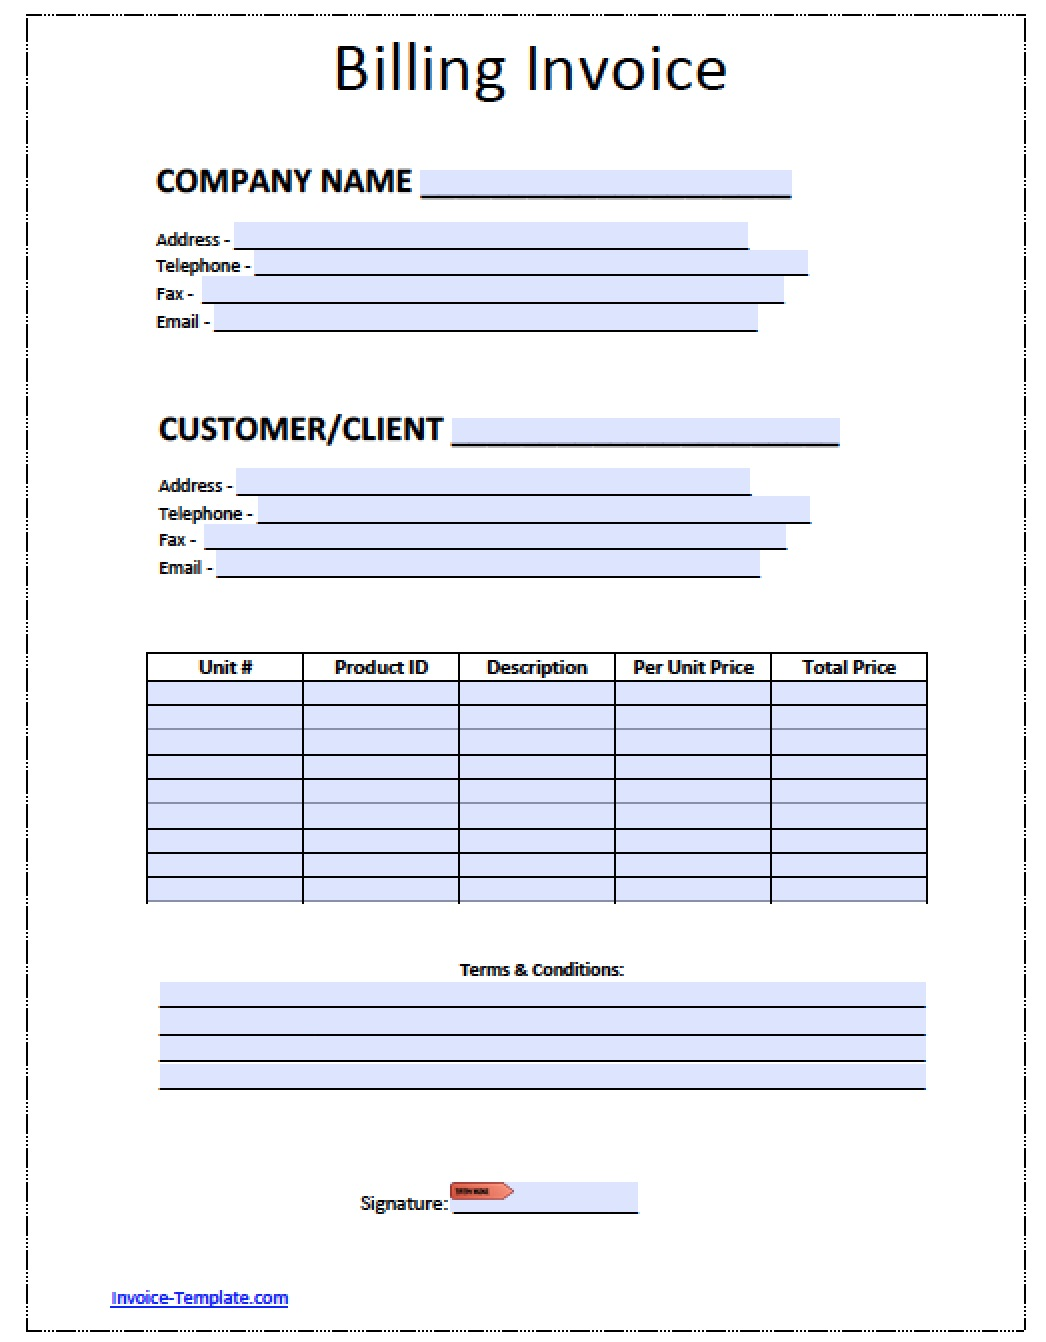 Totallocalus  Ravishing Billing Invoice Invoices Faq U Cloudflare Support Billing  With Lovely Free Billing Invoice Template  Excel  Pdf  Word Doc  Billing With Enchanting How To Delete An Invoice In Quickbooks Also How To Create An Invoice In Addition Open Invoice And Invoice App As Well As What Is An Invoice Additionally Free Invoice Template From Happytomco With Totallocalus  Lovely Billing Invoice Invoices Faq U Cloudflare Support Billing  With Enchanting Free Billing Invoice Template  Excel  Pdf  Word Doc  Billing And Ravishing How To Delete An Invoice In Quickbooks Also How To Create An Invoice In Addition Open Invoice From Happytomco